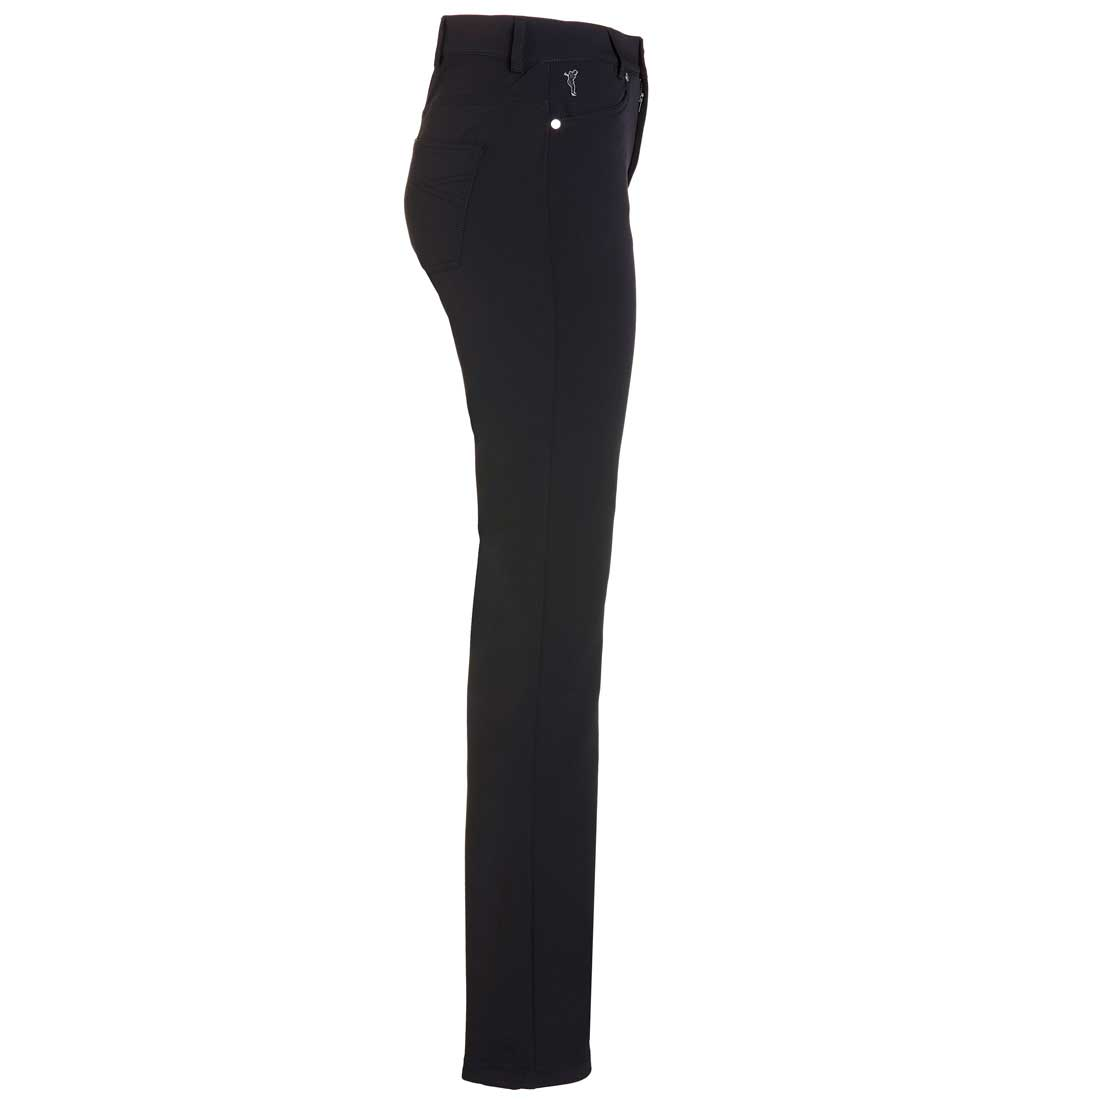 Komfortable Damen Golfhose aus Thermo Stretch in Slim Fit extra long